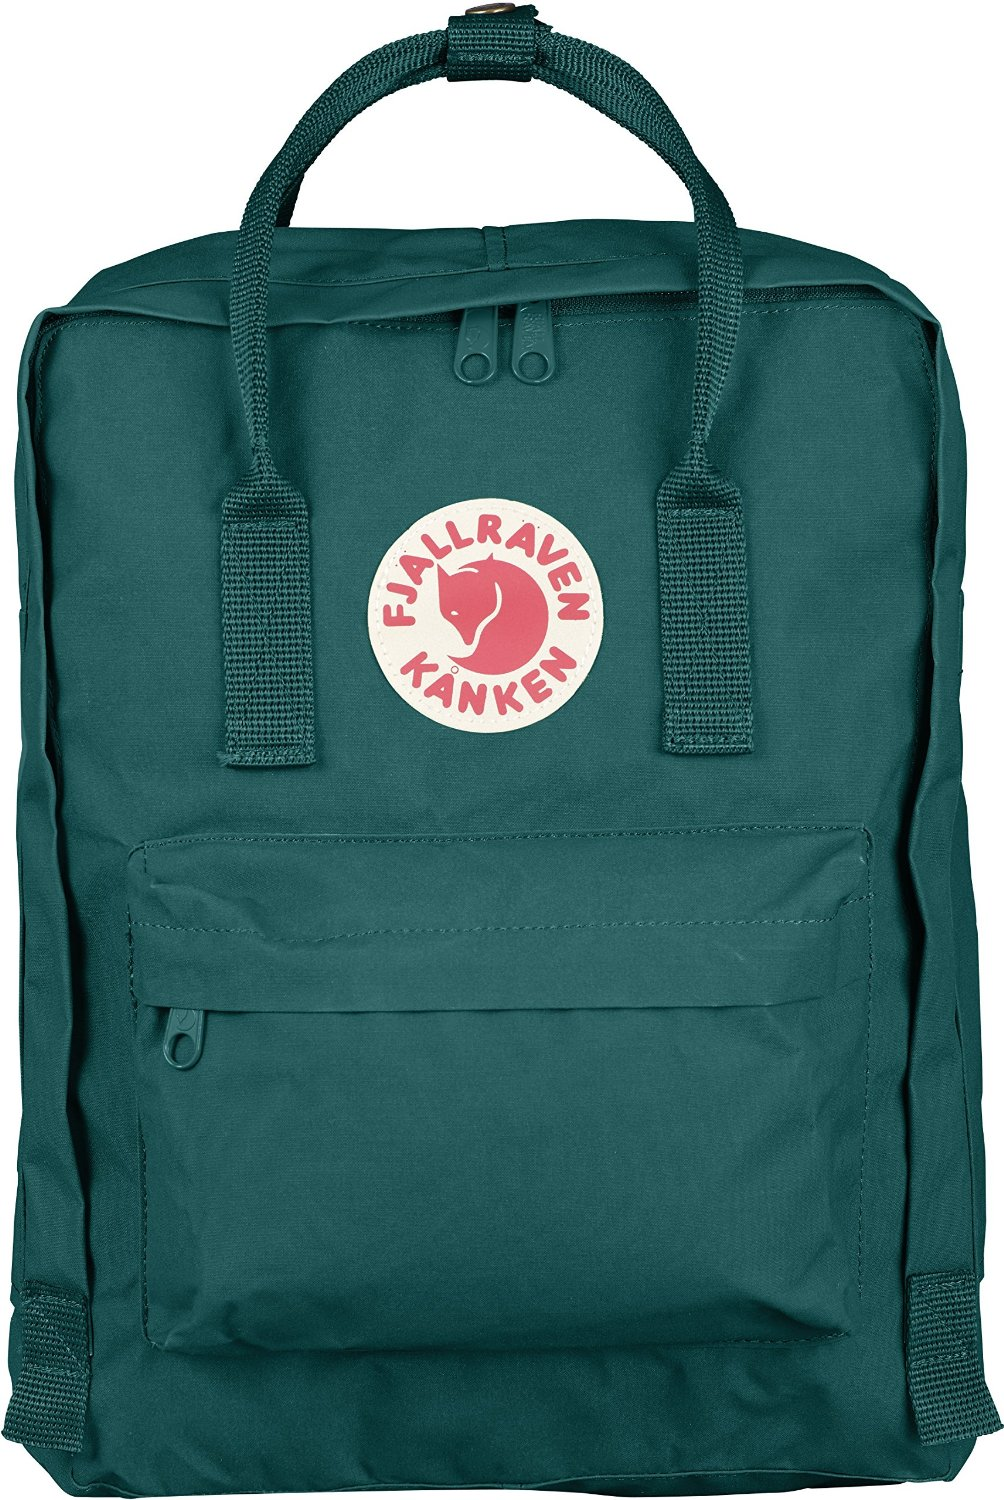 Amazon Prime gift guide the kanken daypack